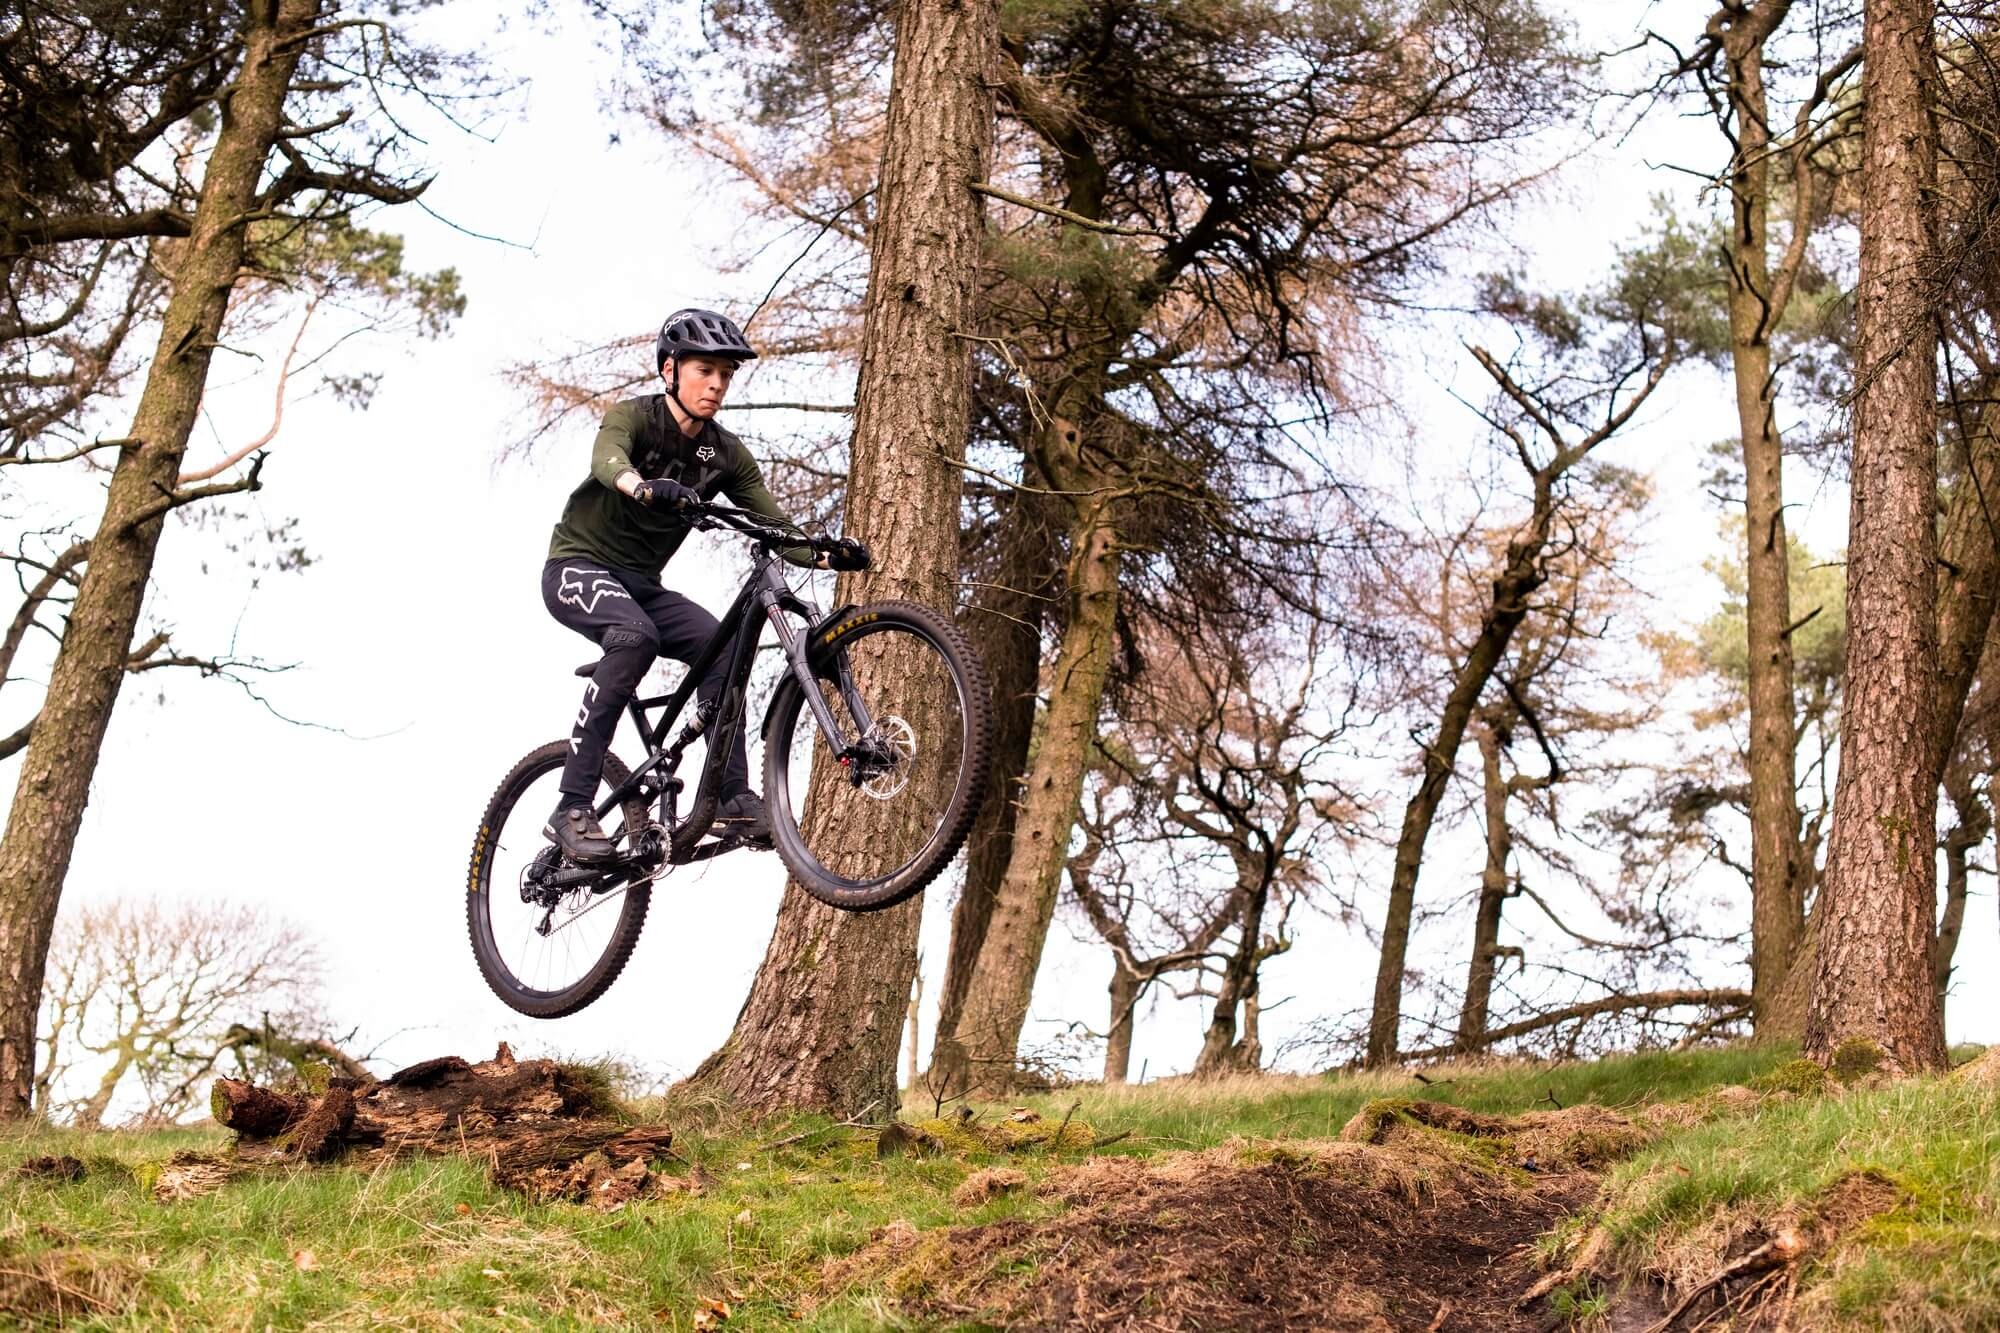 A University of Derby Outdoor student flies through the air on a mountain bike scaling grassy terrain and trees